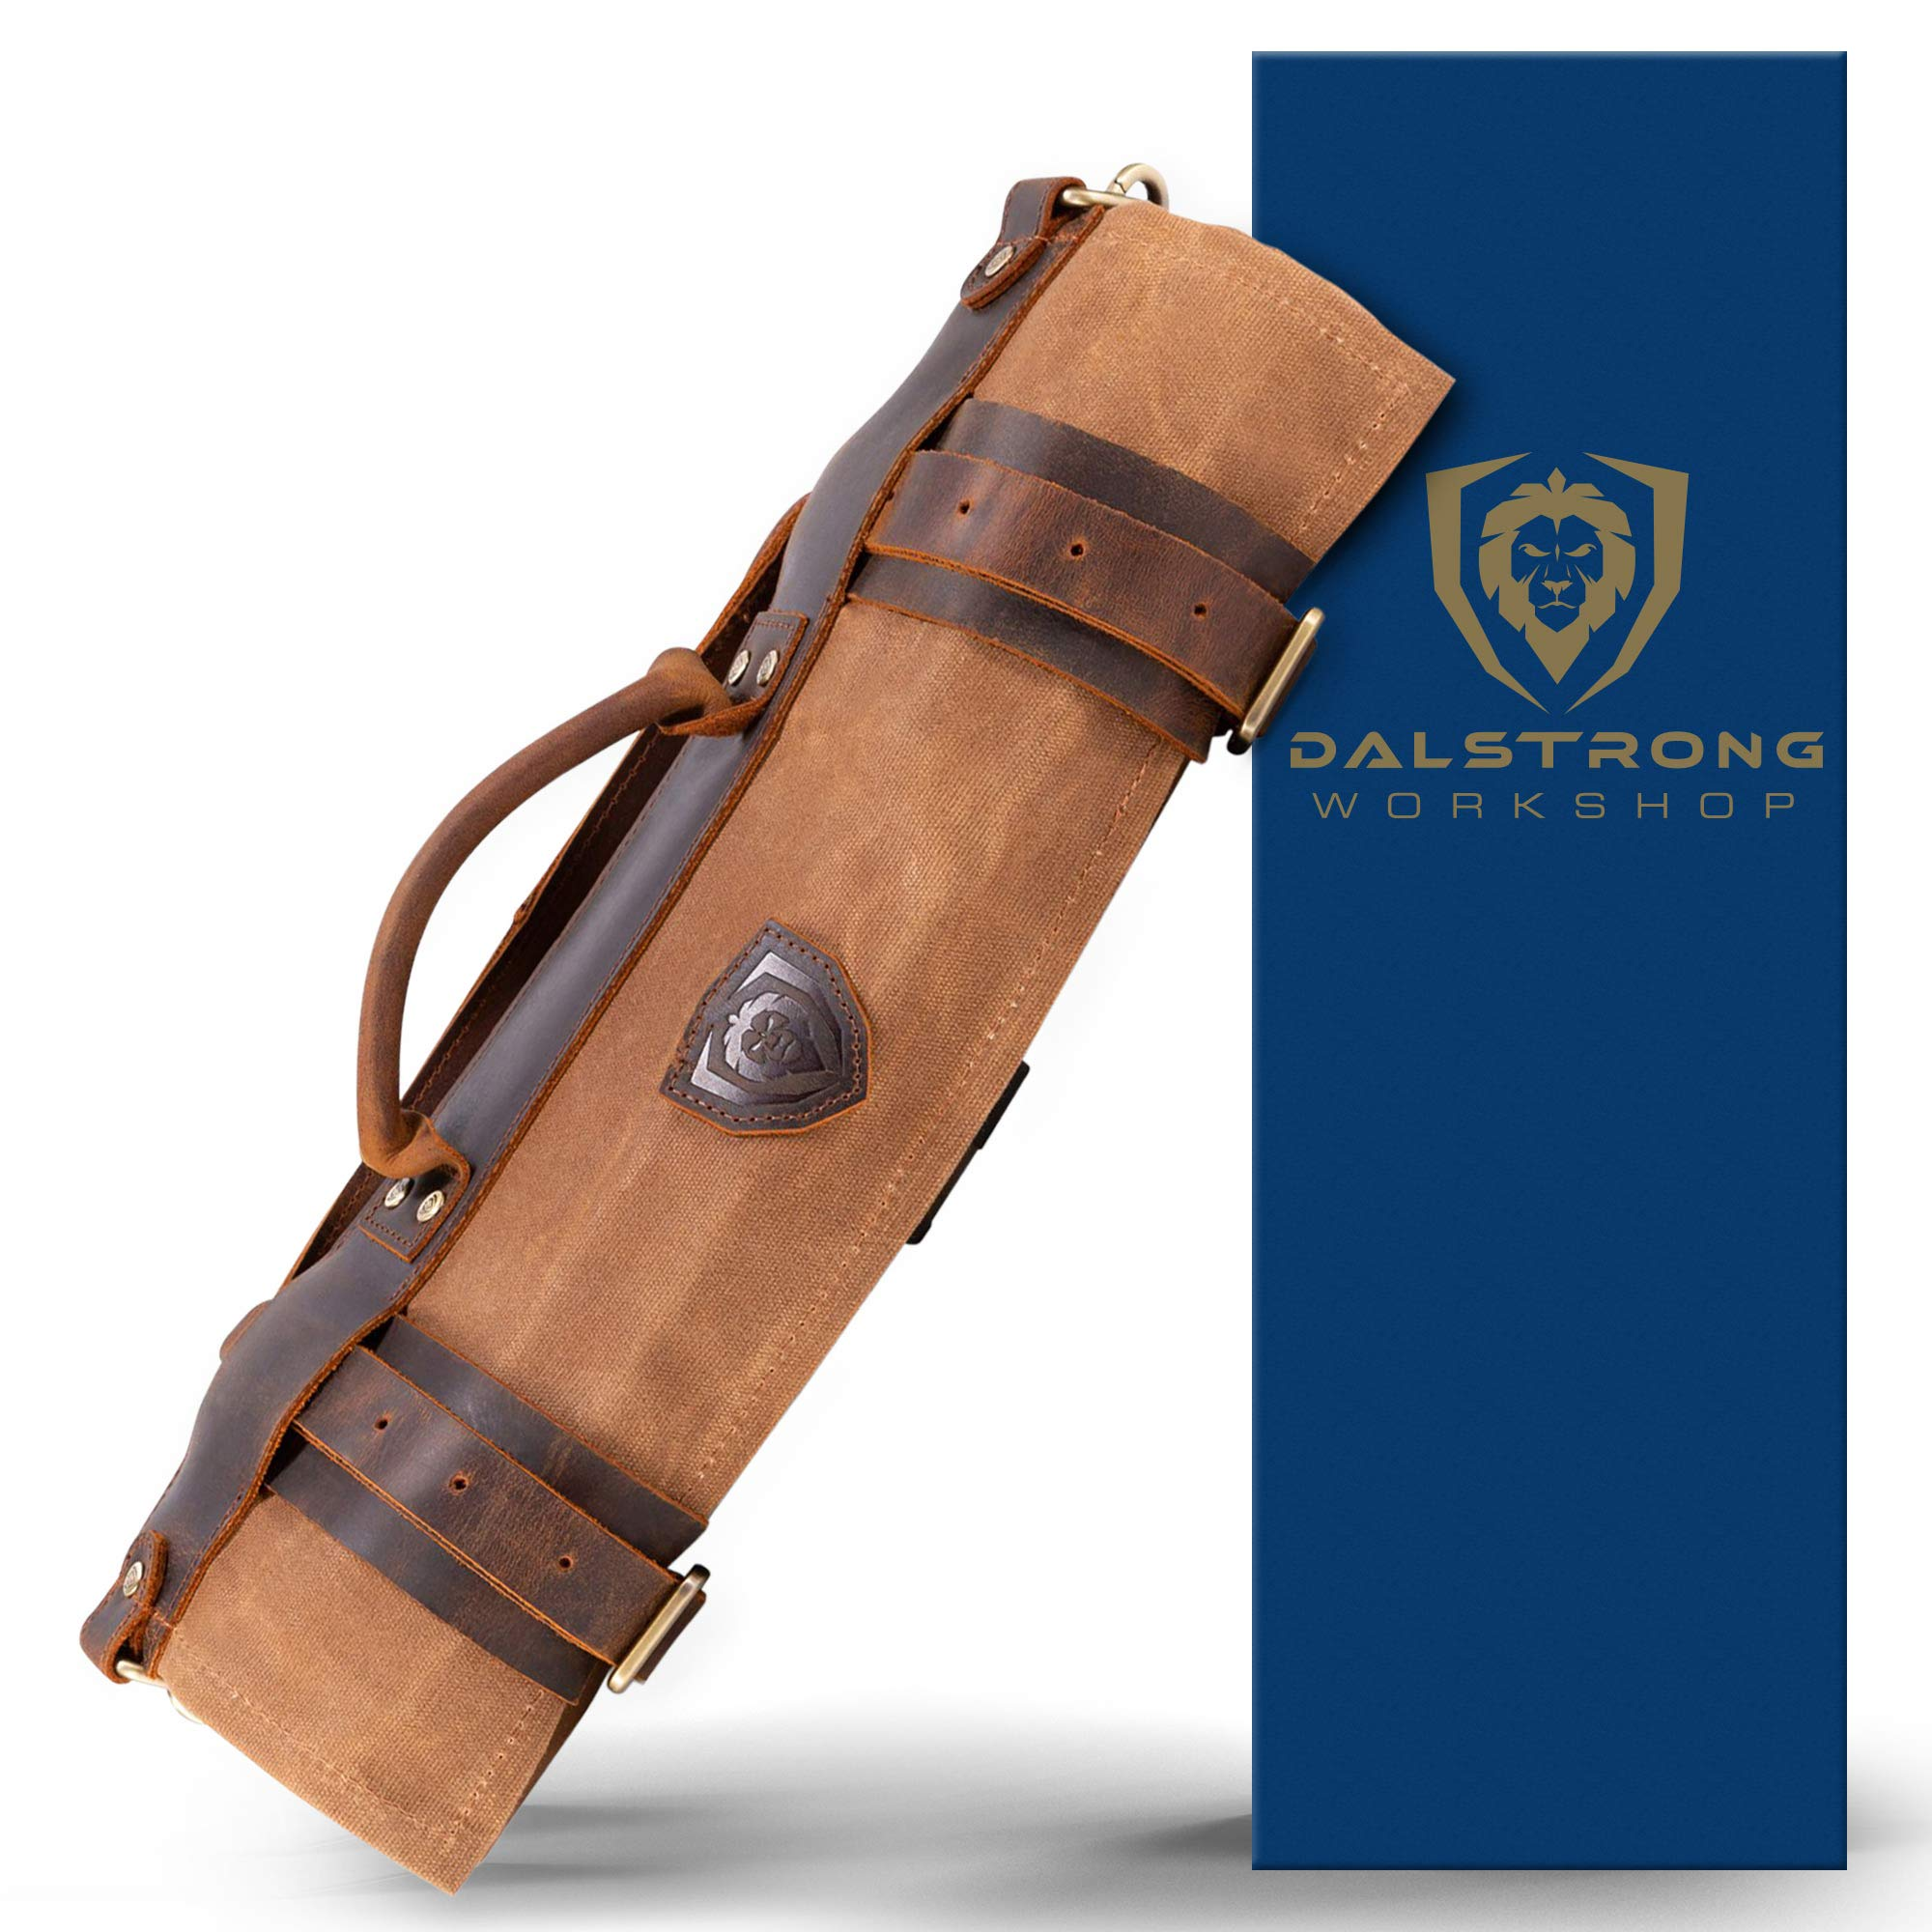 Dalstrong - Nomad Knife Roll - 12oz Heavy Duty Canvas & Top Grain Leather Roll Bag - Desert Drifter (Brown) - 13 Slots - Interior and Rear Zippered Pockets - Blade Travel Storage/Case by Dalstrong (Image #1)